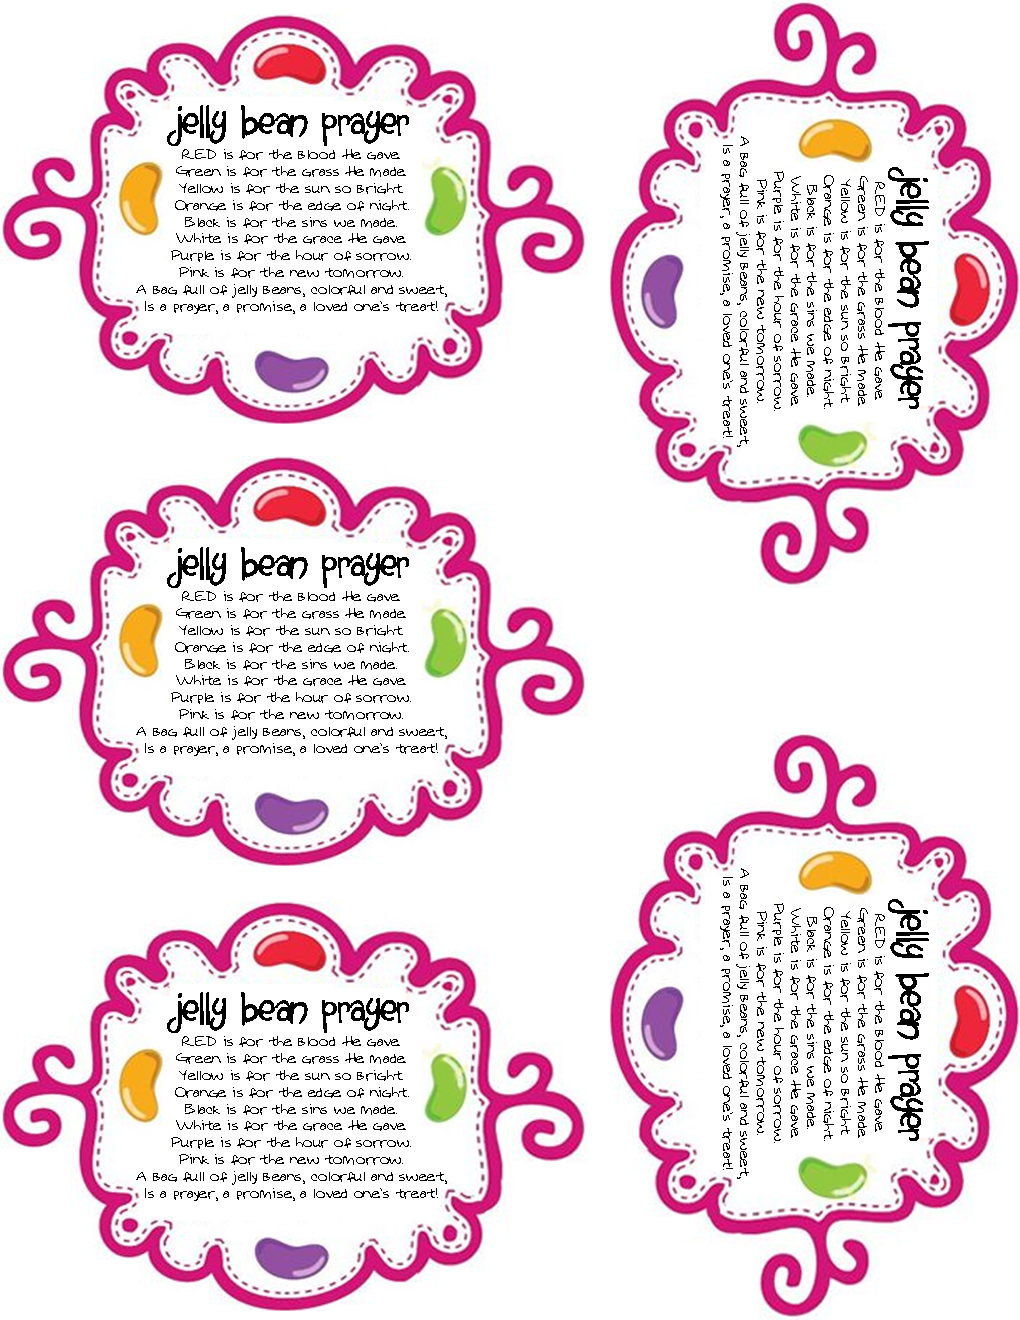 Adorable image with jelly bean prayer printable